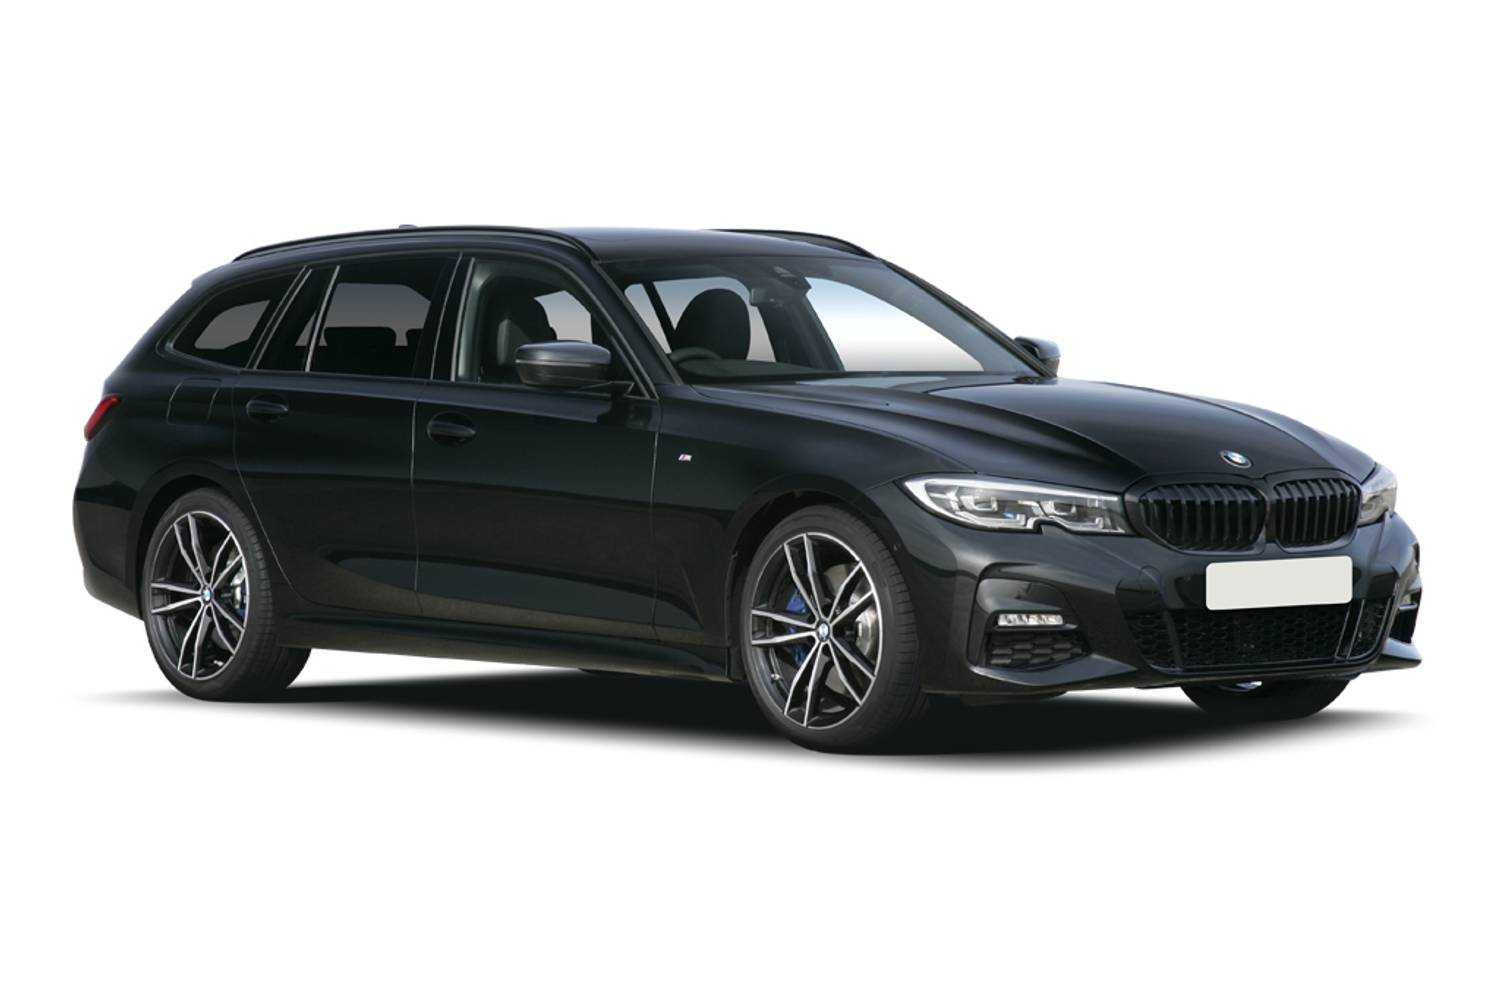 New Bmw 3 Series Touring Special Editions 330i M Sport Plus Edition 5 Door Step Auto 2019 For Sale